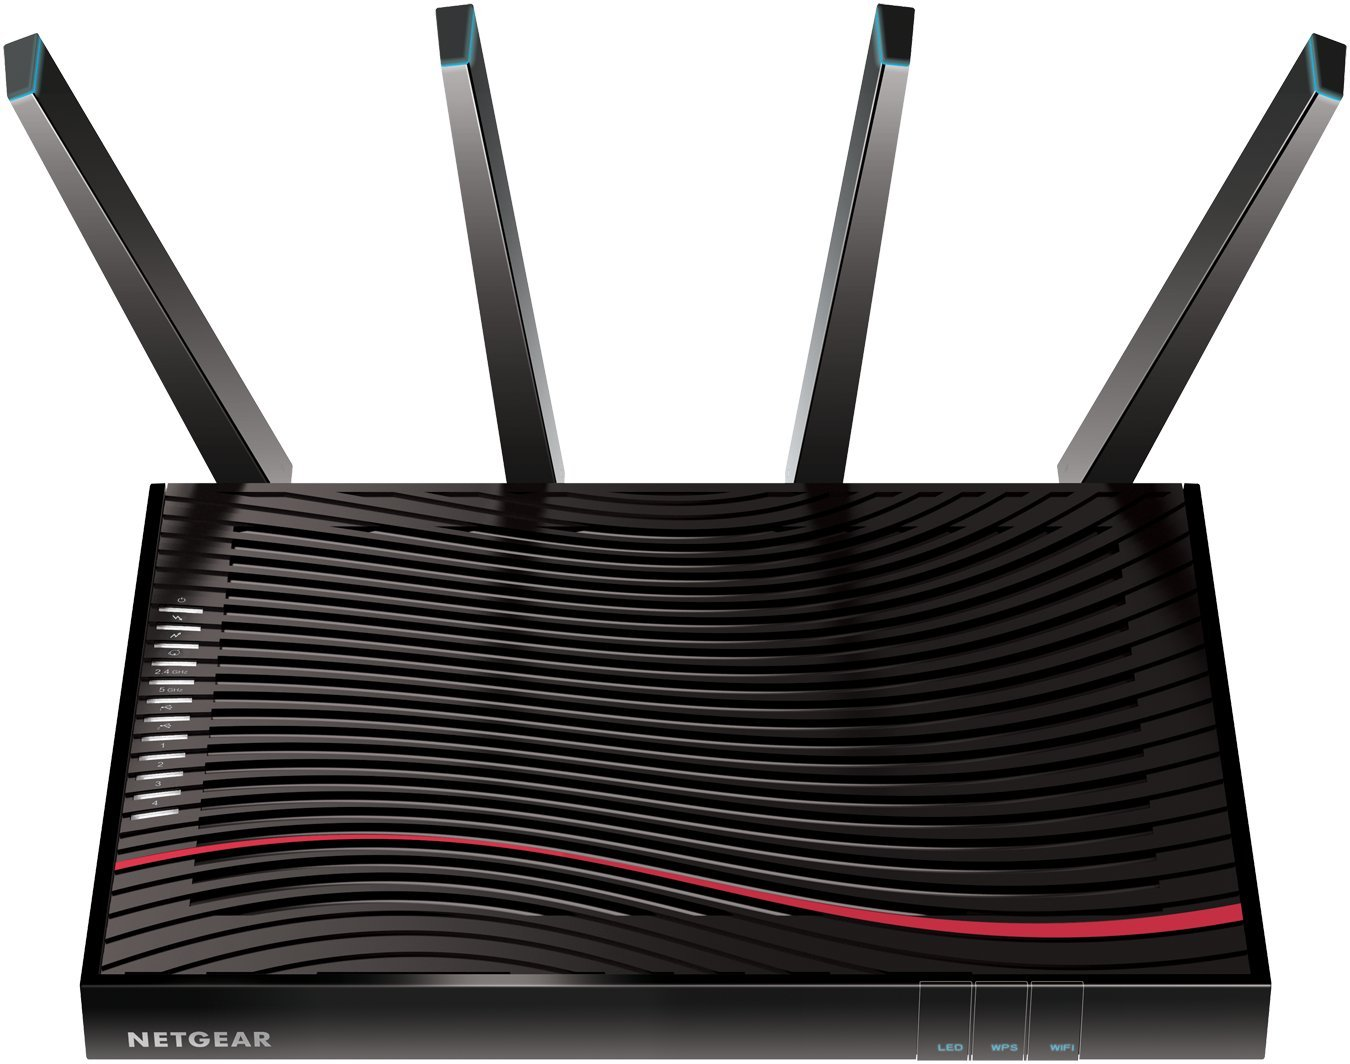 Spectrum NETGEAR Cable Modem Router Combo Certified for Xfinity by Comcast 8x4 C6220 AC1200 WiFi DOCSIS 3.0 COX /& More